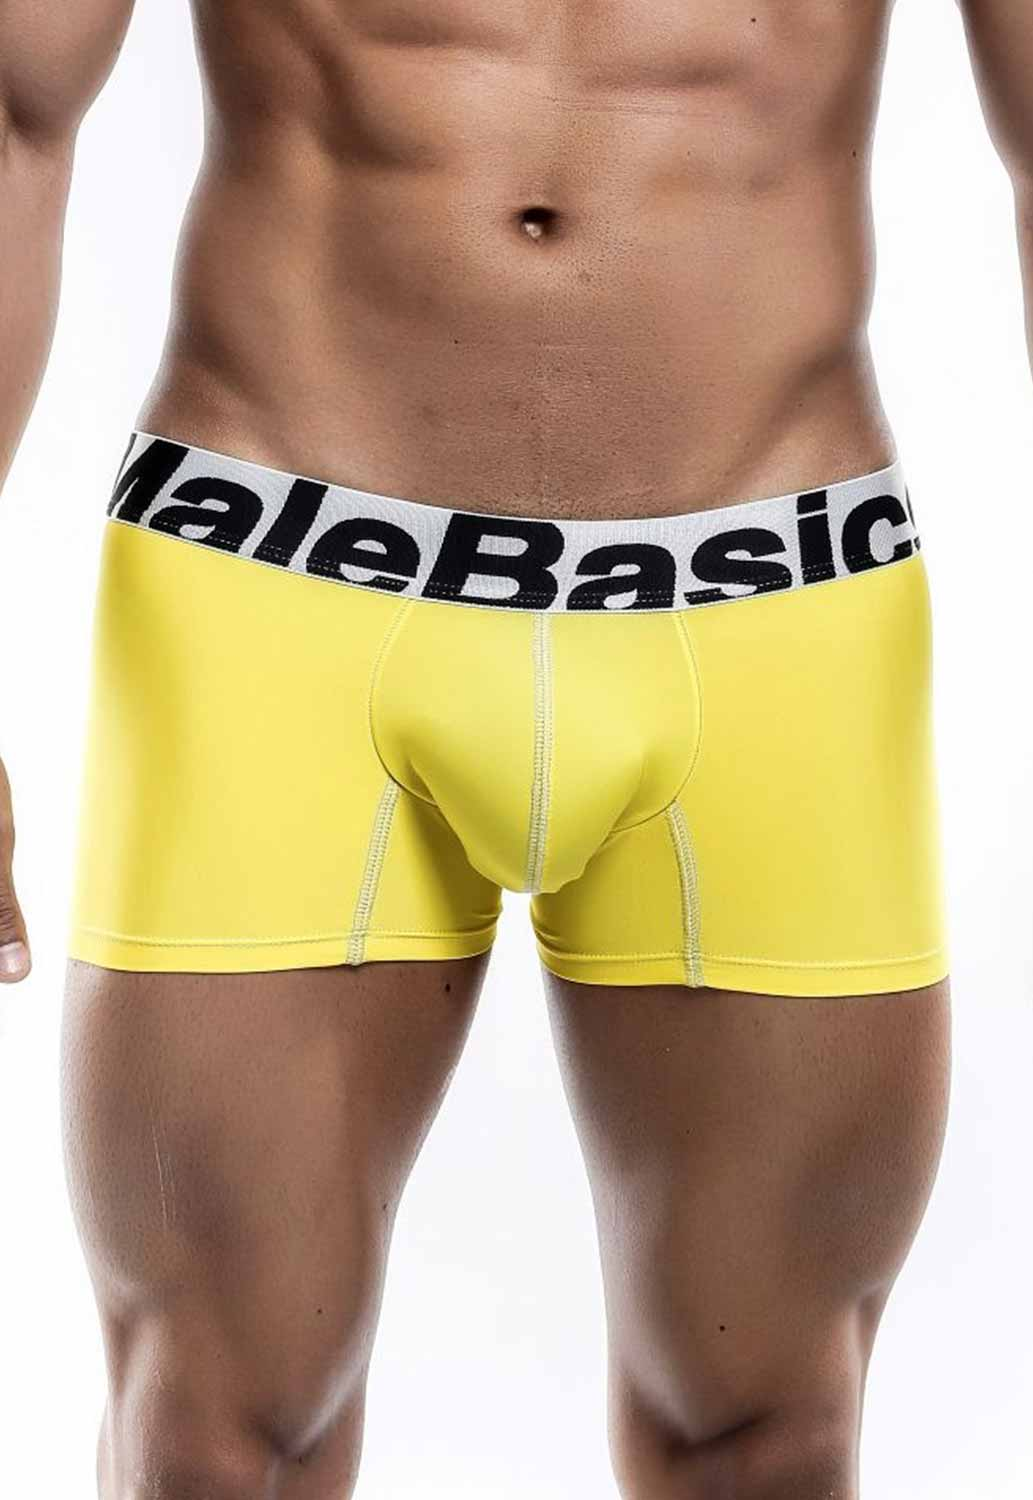 thumbnail 5 - Malebasics Men's Microfiber Short Boxer MBM01Y Men's Trunks